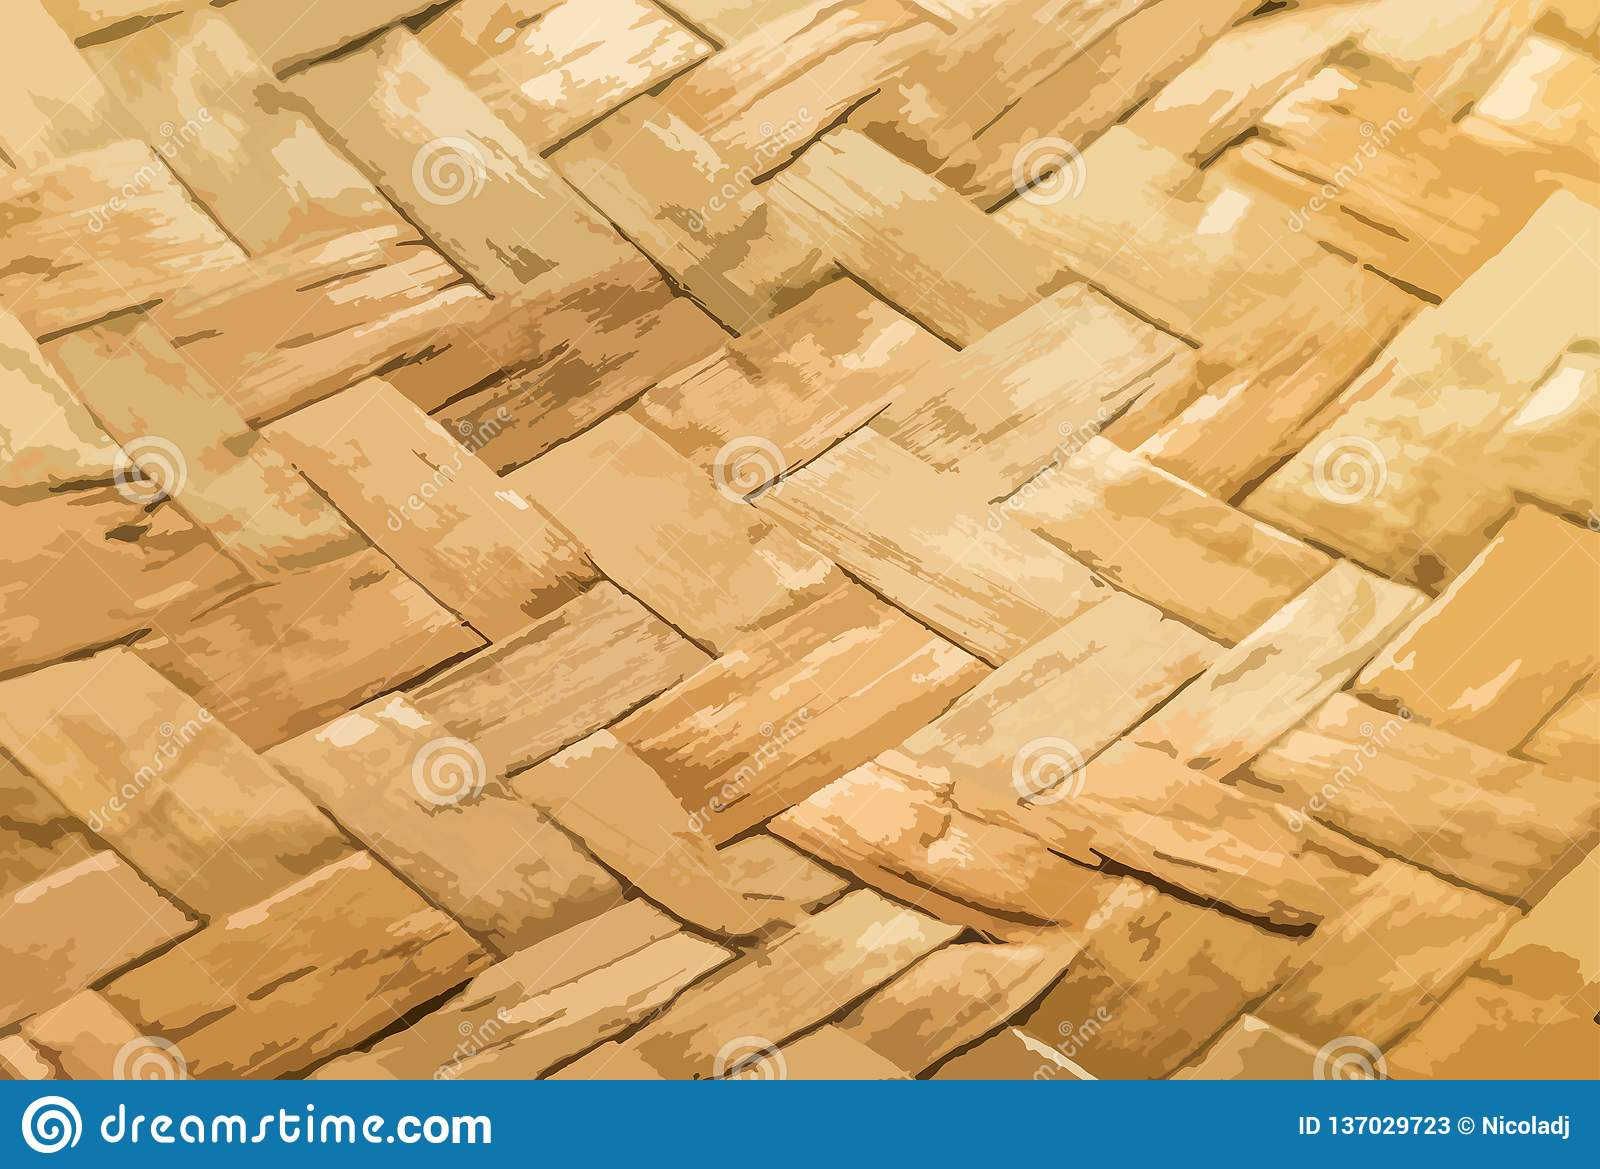 Vector illustration the texture of the weaved straw